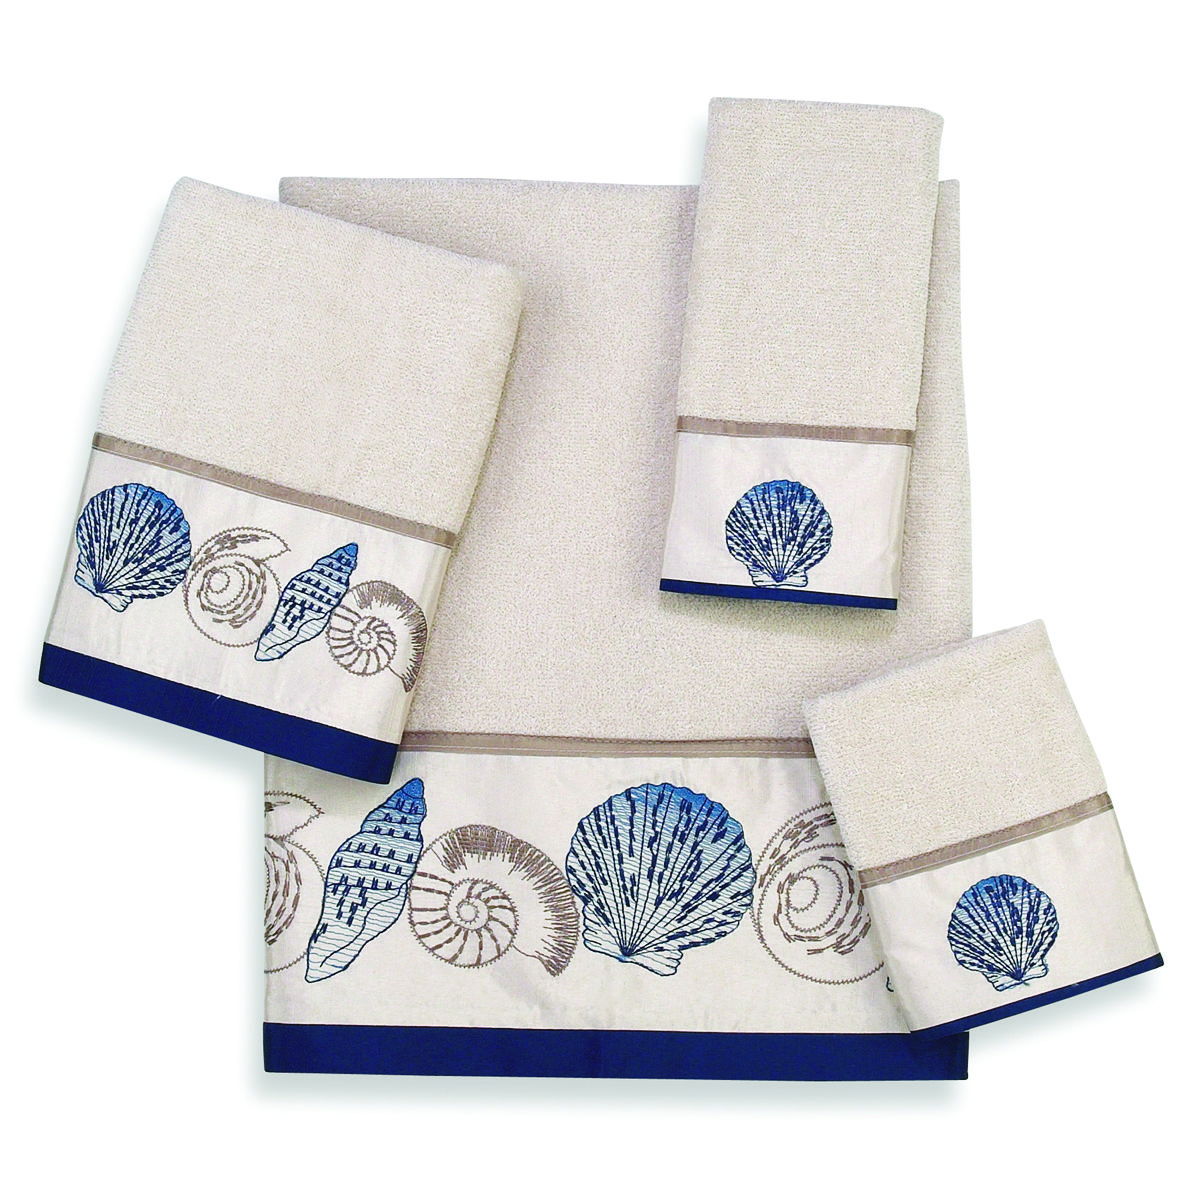 Avanti Hampton Shells Towels Are Perfect For Your Beach Home